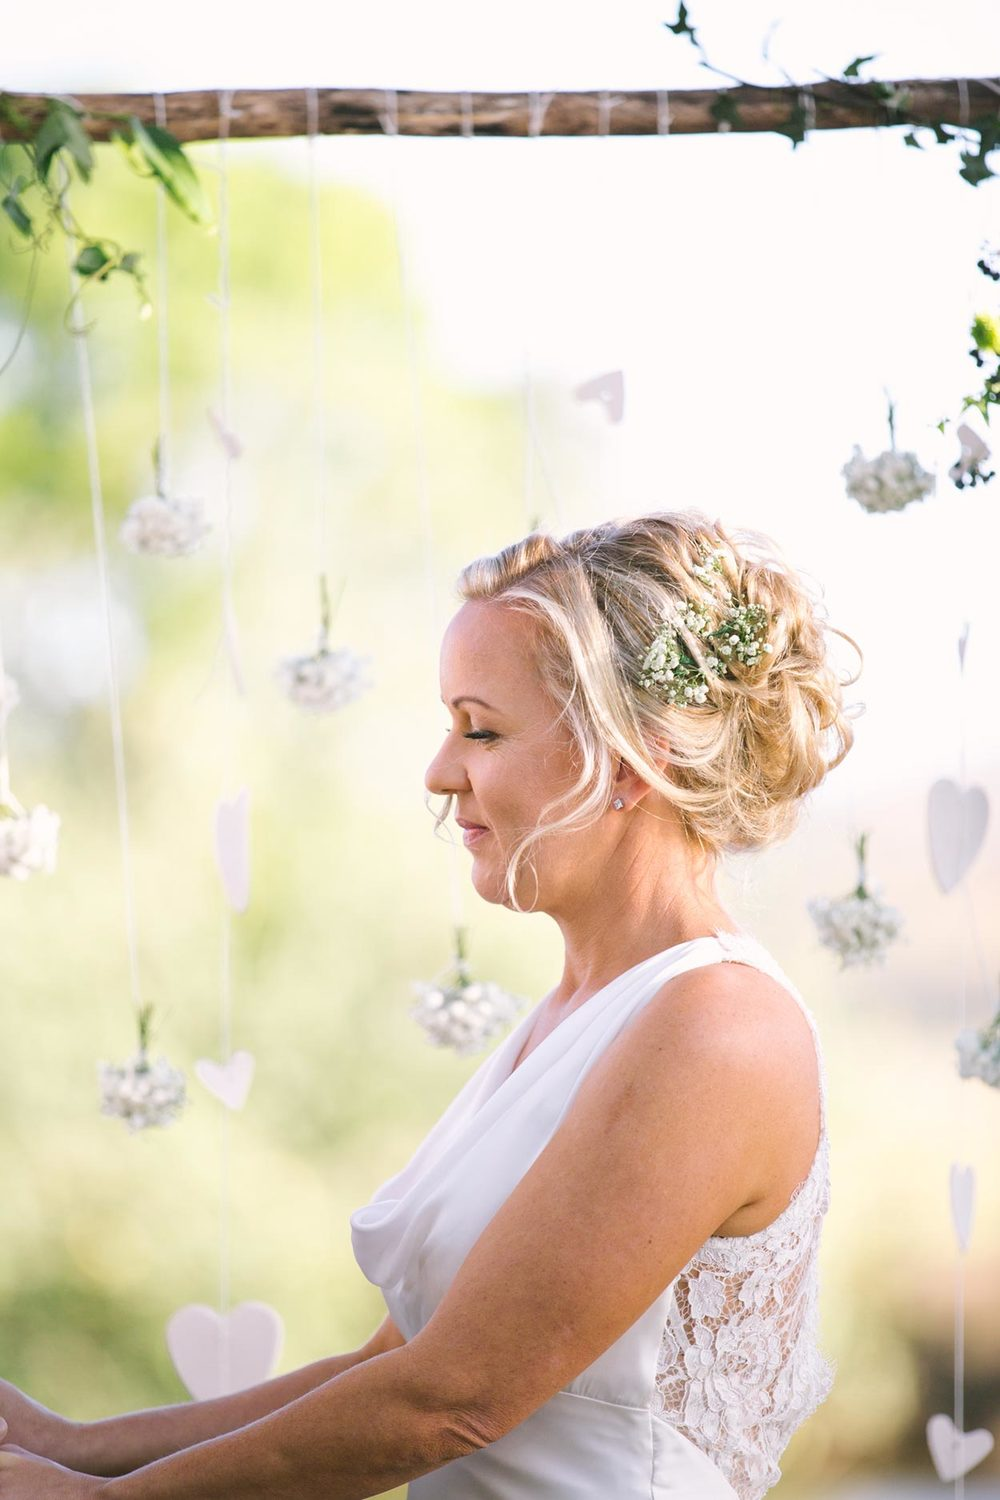 Perfect Moments Captured, Queensland - Caloundra, Sunshine Coast, Australian Wedding Destination Photographers